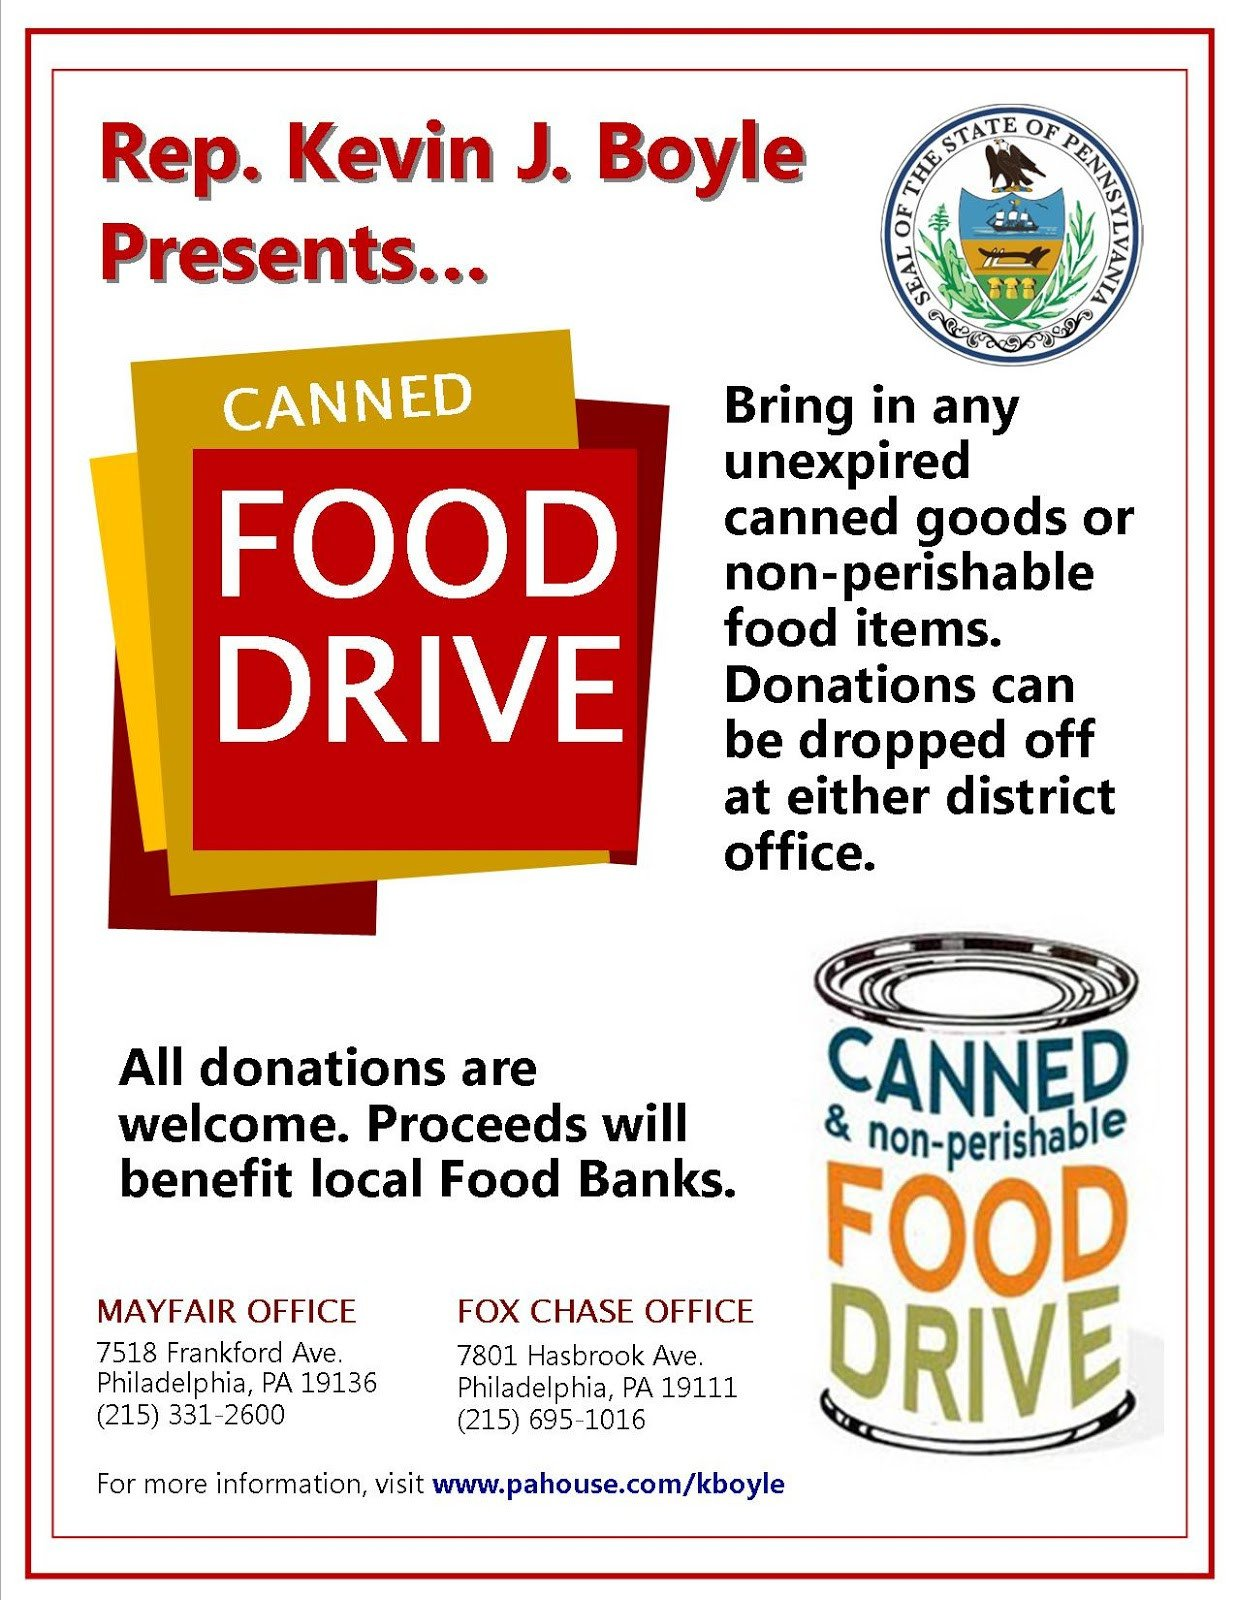 Canned Food Drive Flyer Template Mayfair Civic association December 2012